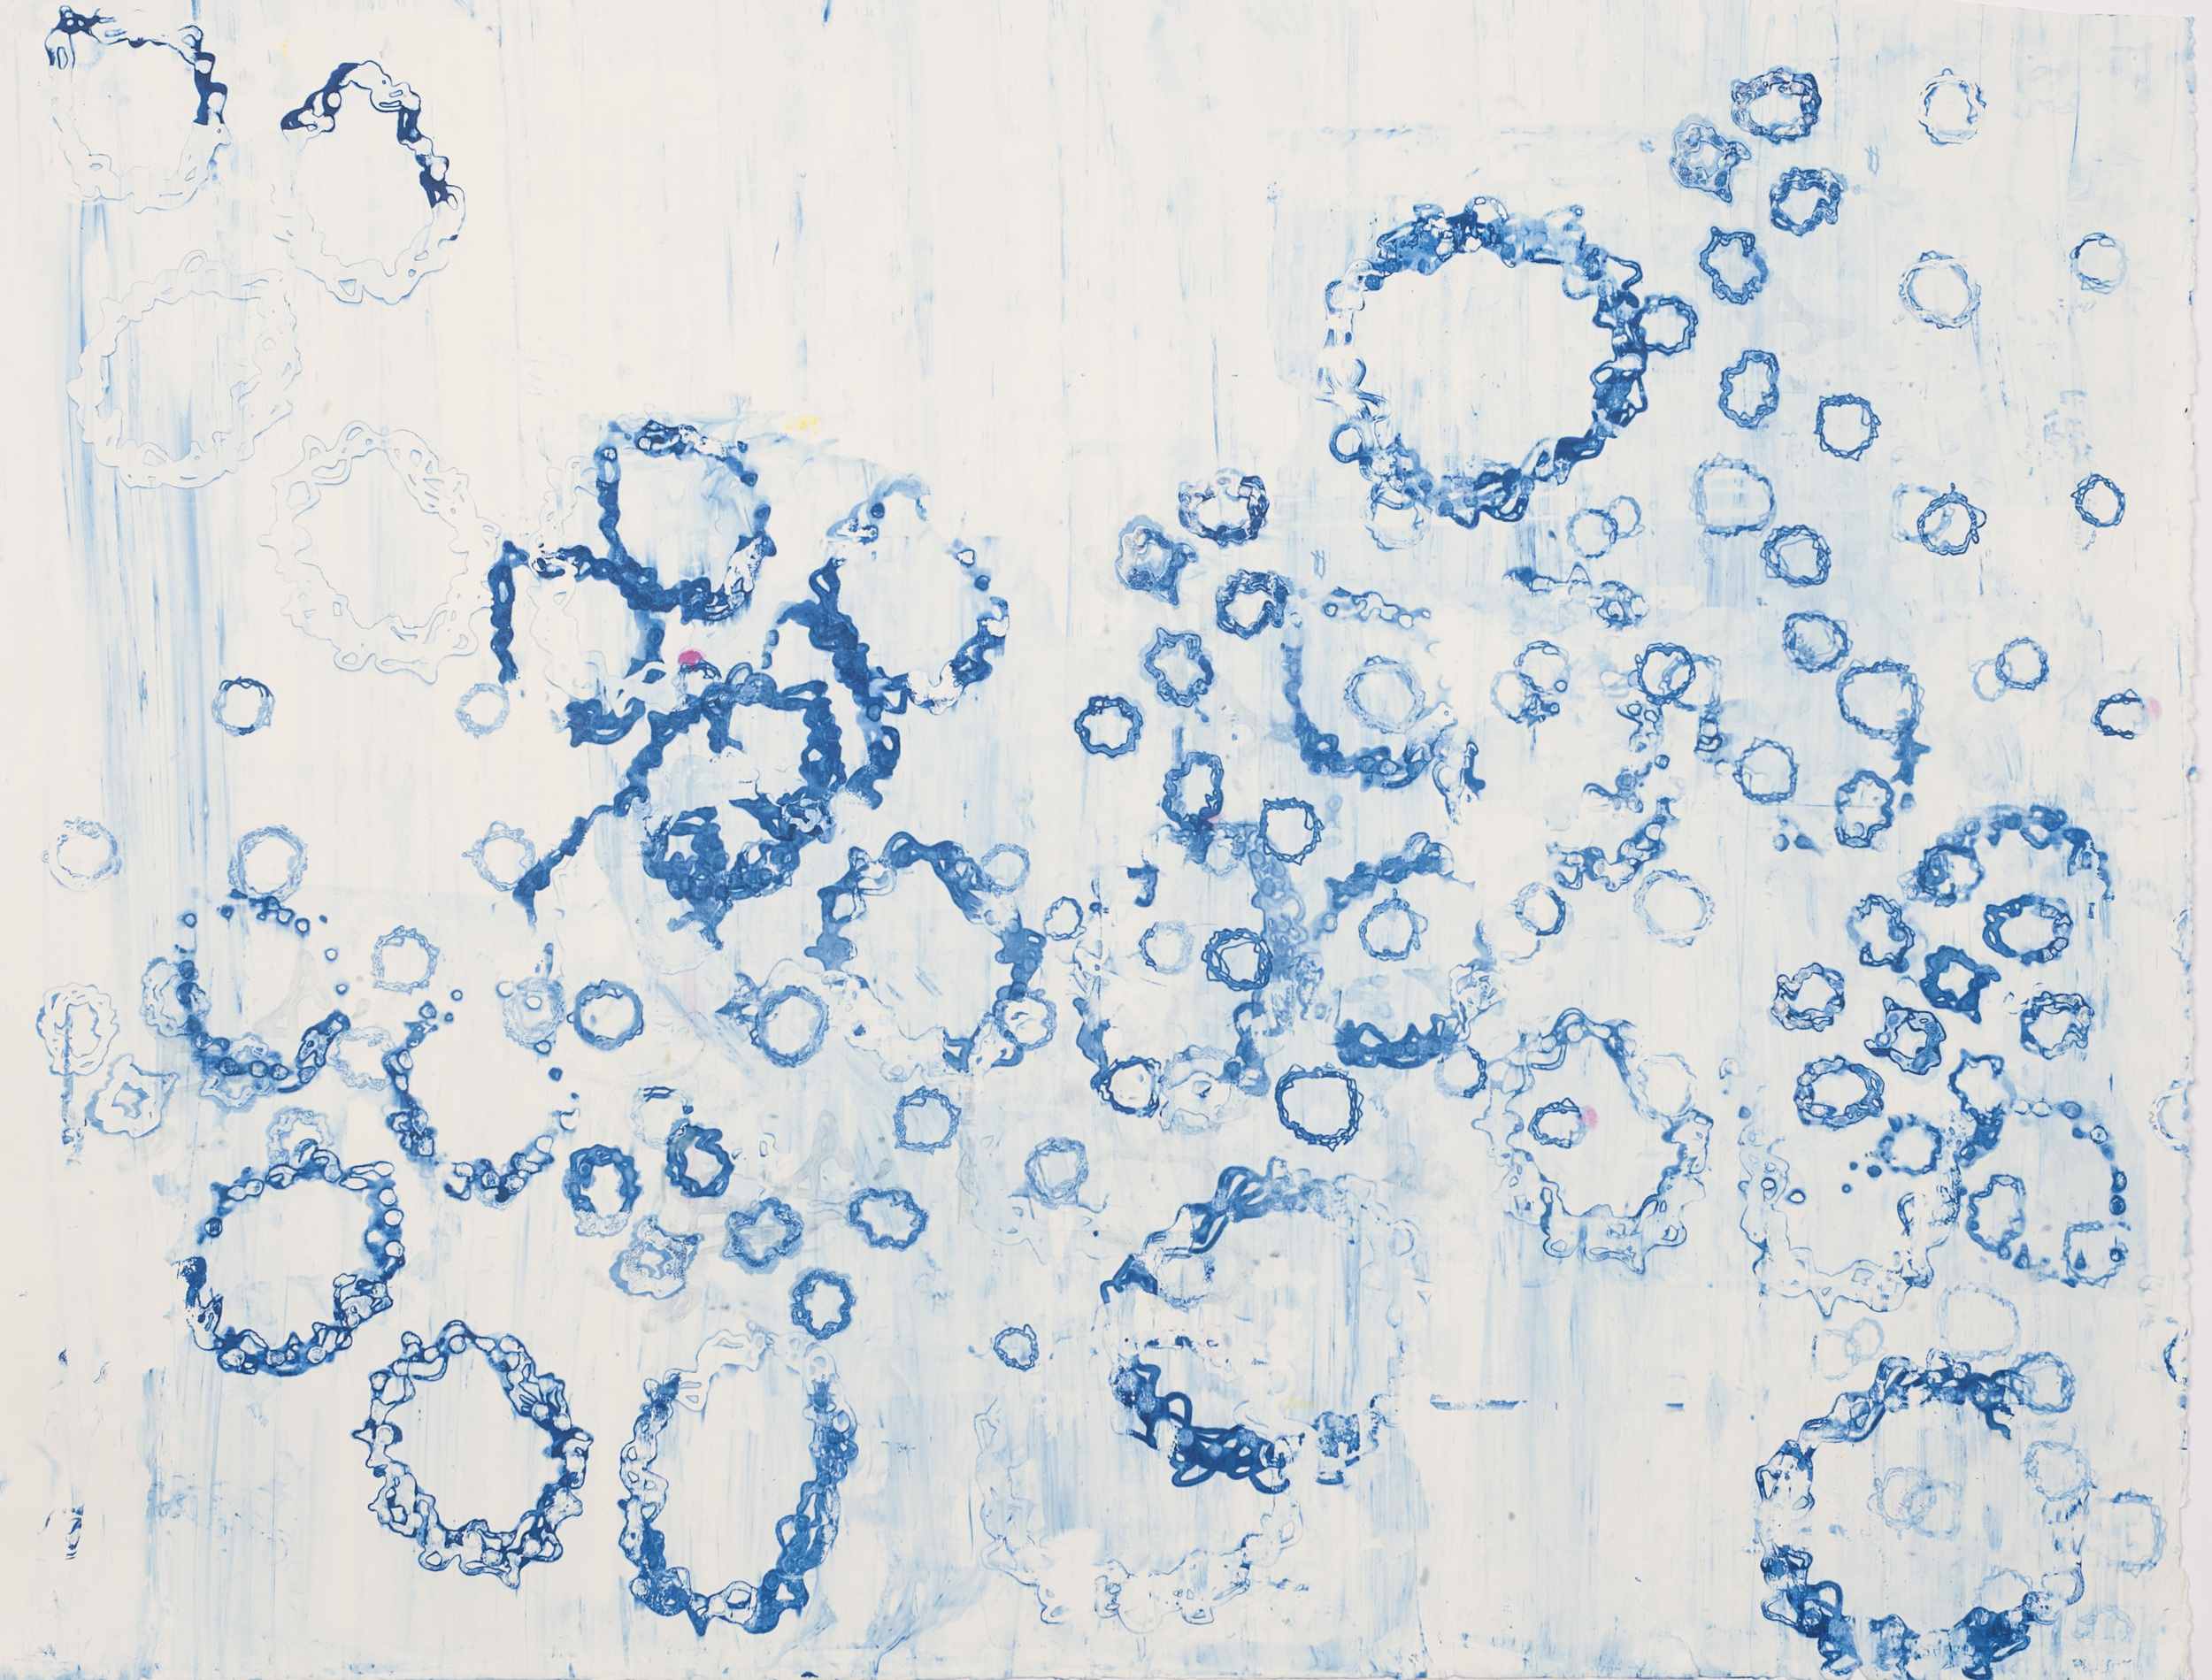 "Blue Bubbly, 39"" x 52"", Silkscreen painting on paper, 2016. SOLD"